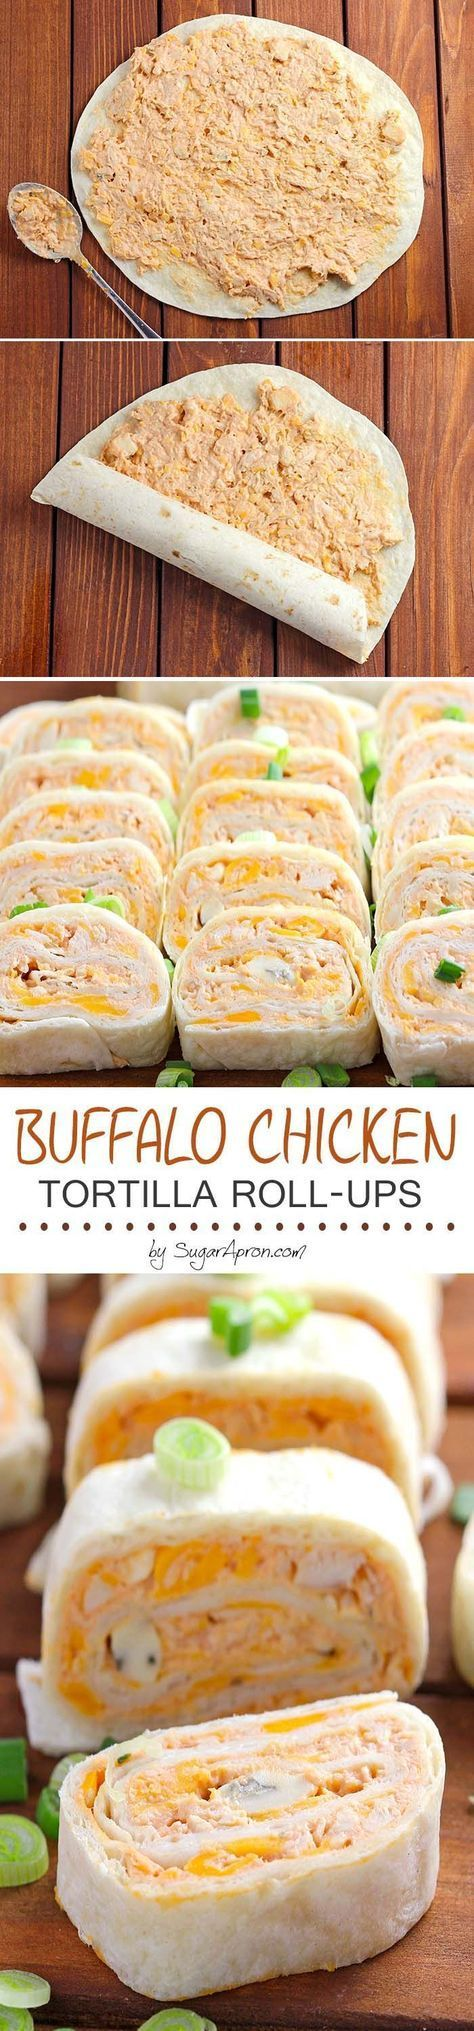 A Buffalo Chicken Tortilla Roll Ups recipe, perfect for game day....or any day! (Easy Meal For 3 Healthy Recipes)